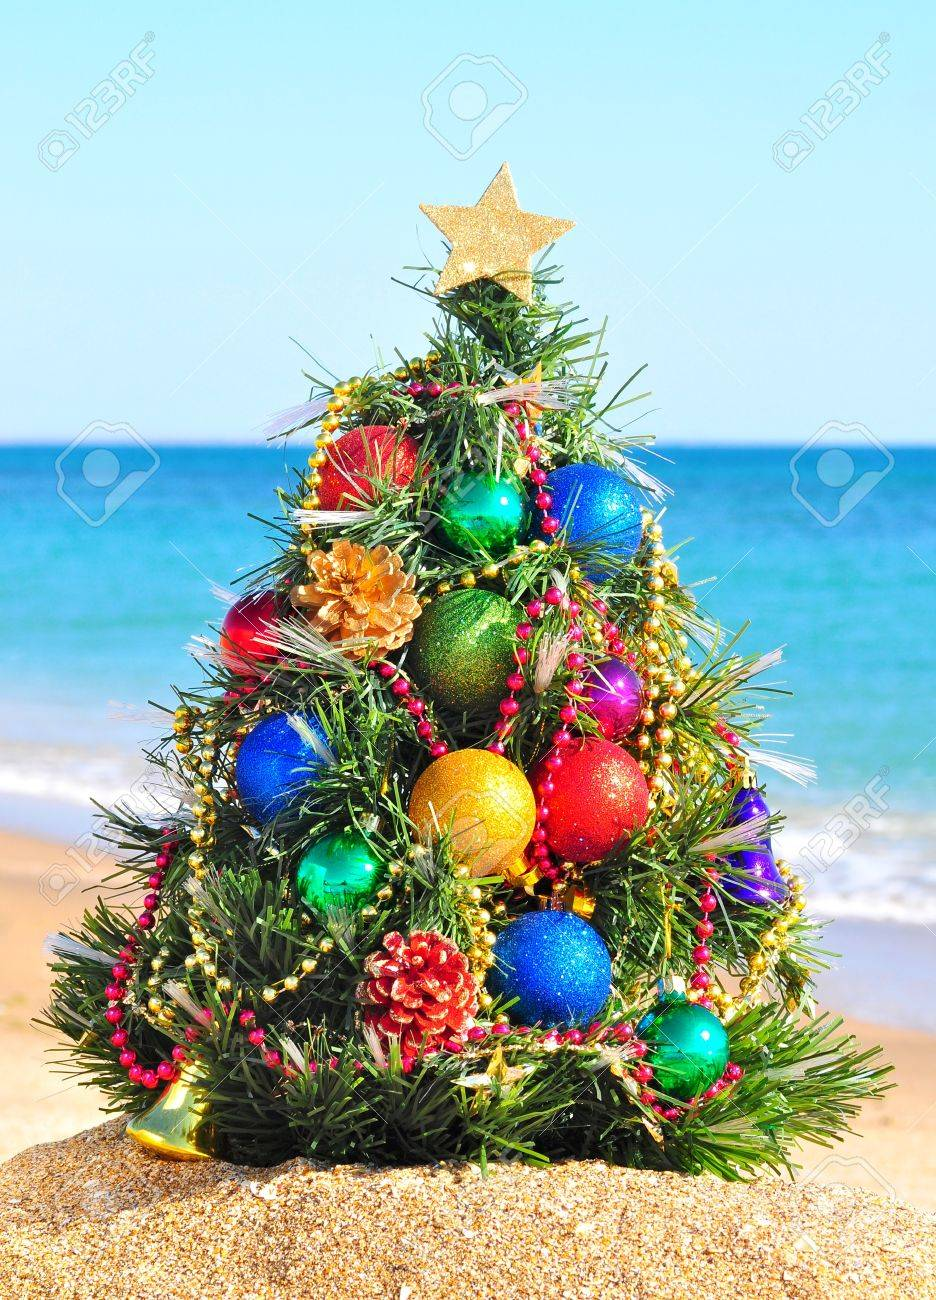 Christmas tree on the sand in the beach - 16019422